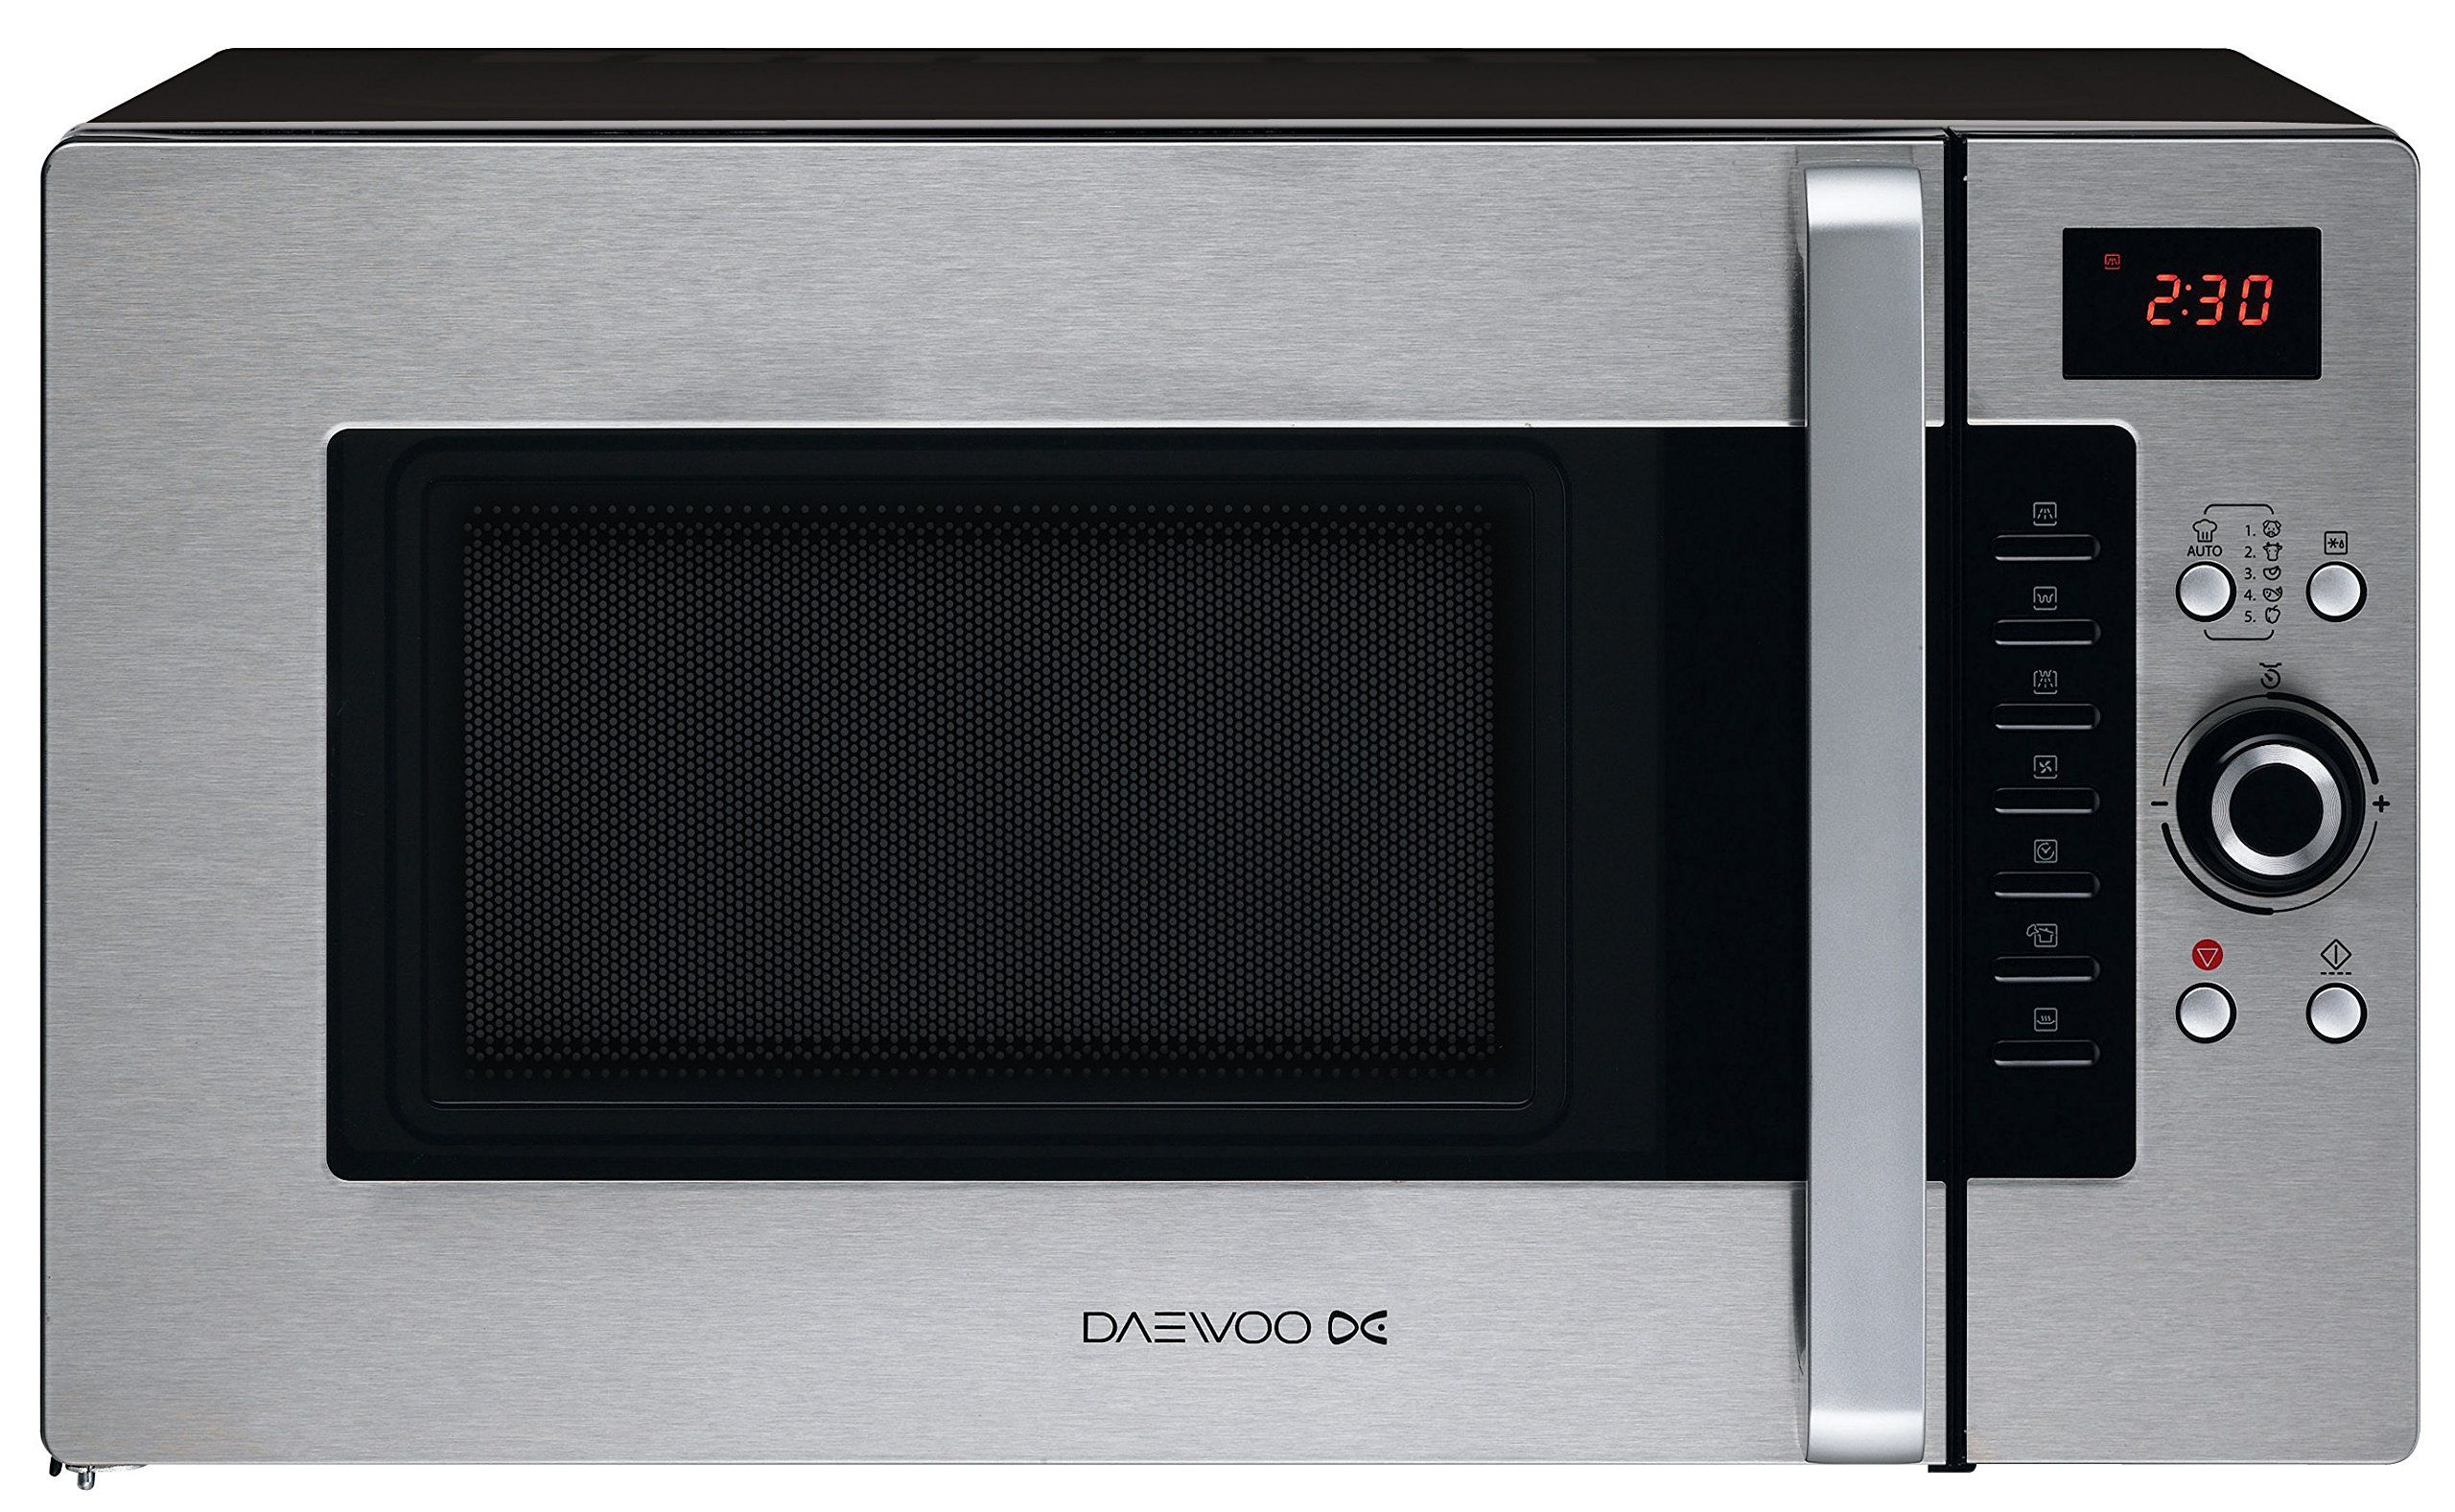 Daewoo Koc9q4ds Convection Microwave Oven 1 0 Cu Ft 900w Stainless Steel Read More Revi Microwave Convection Oven Best Convection Microwave Microwave Oven